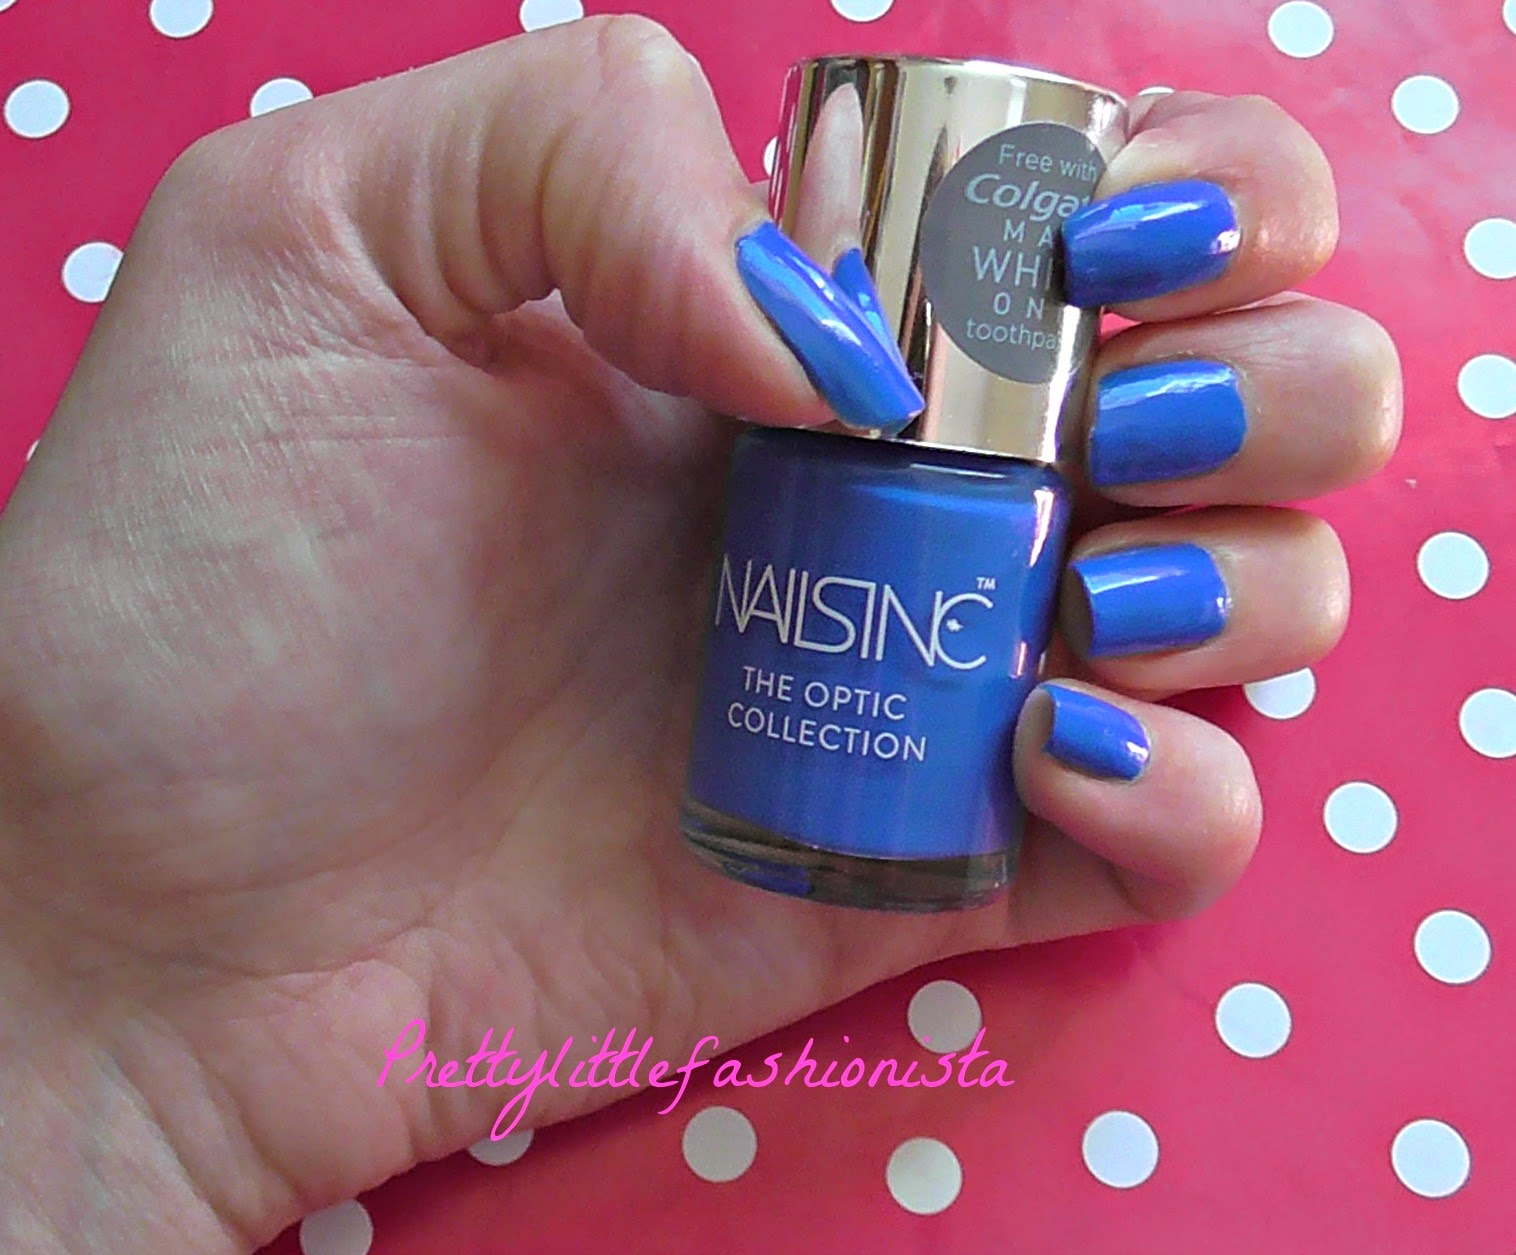 NOTD: Nails Inc Optic Wave